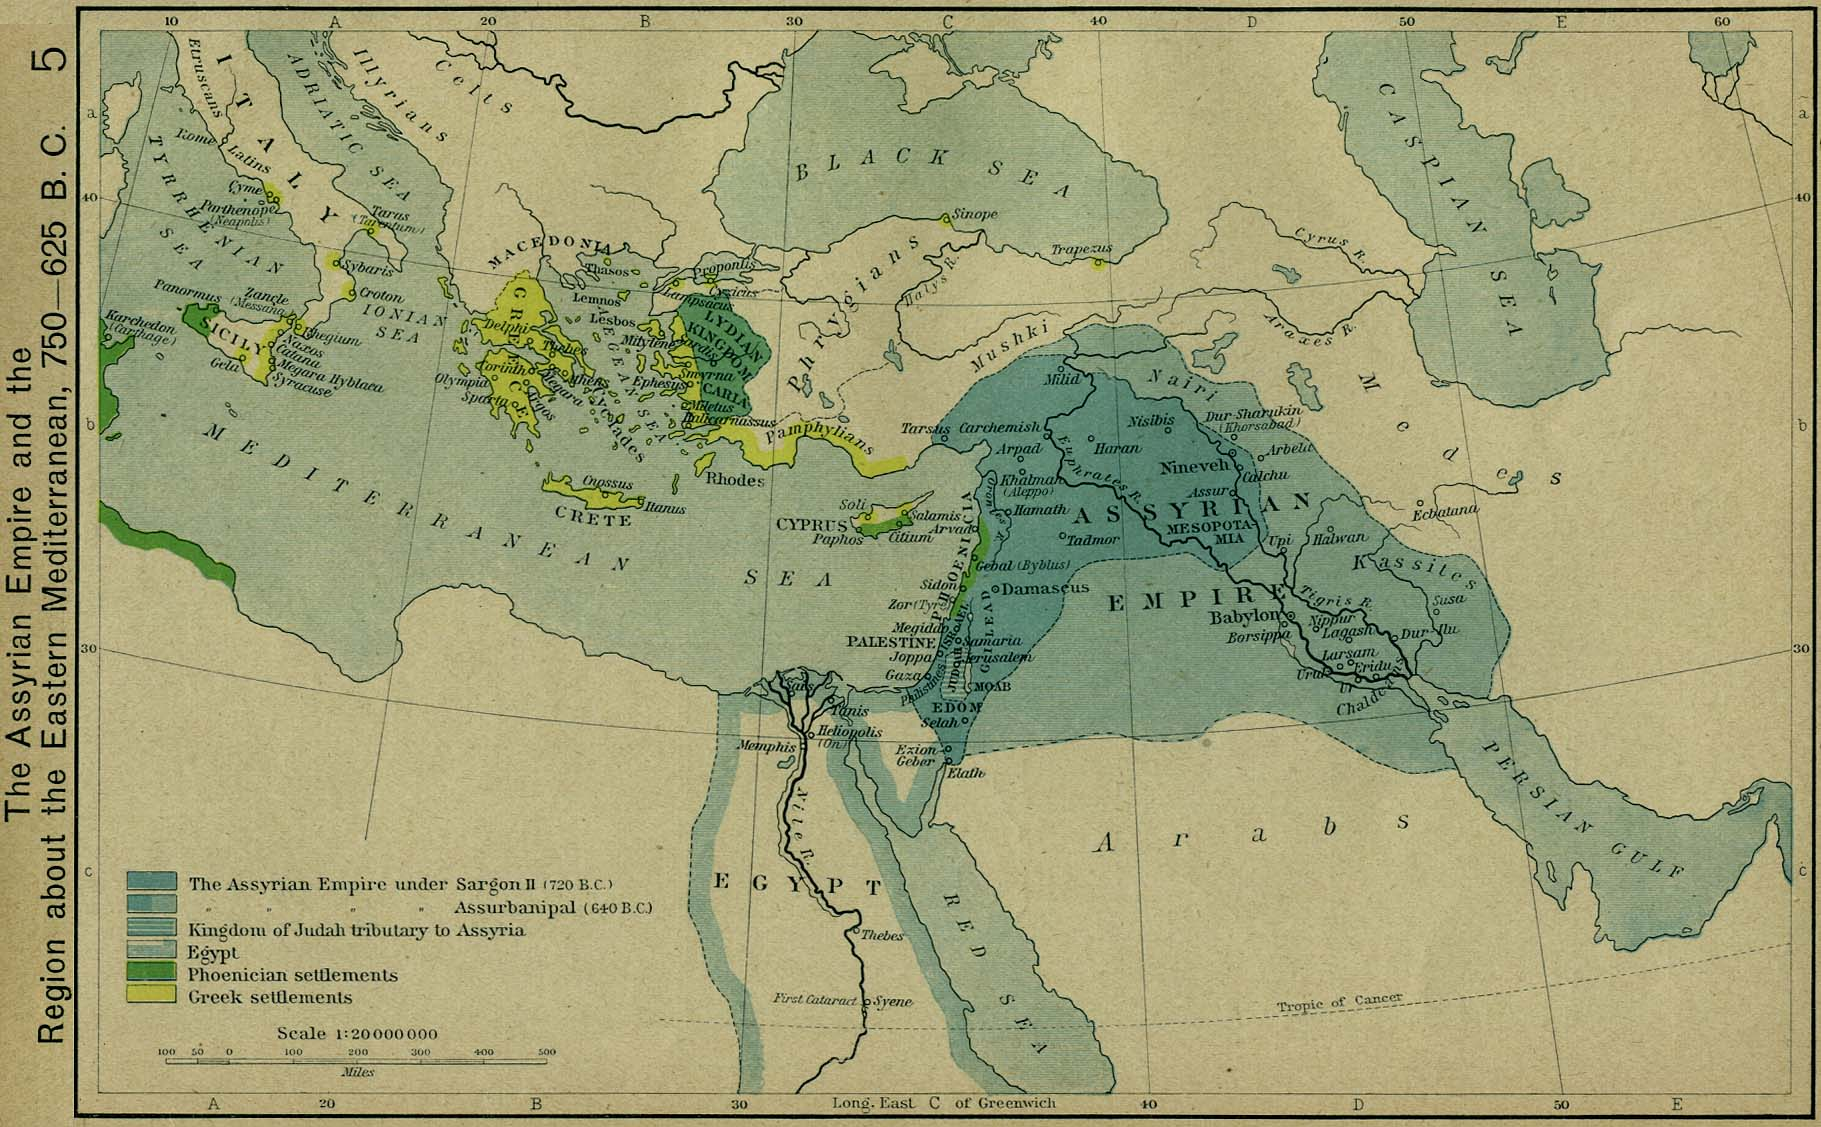 the assyrian empire and the region about the eastern mediterranean 750 625 bc